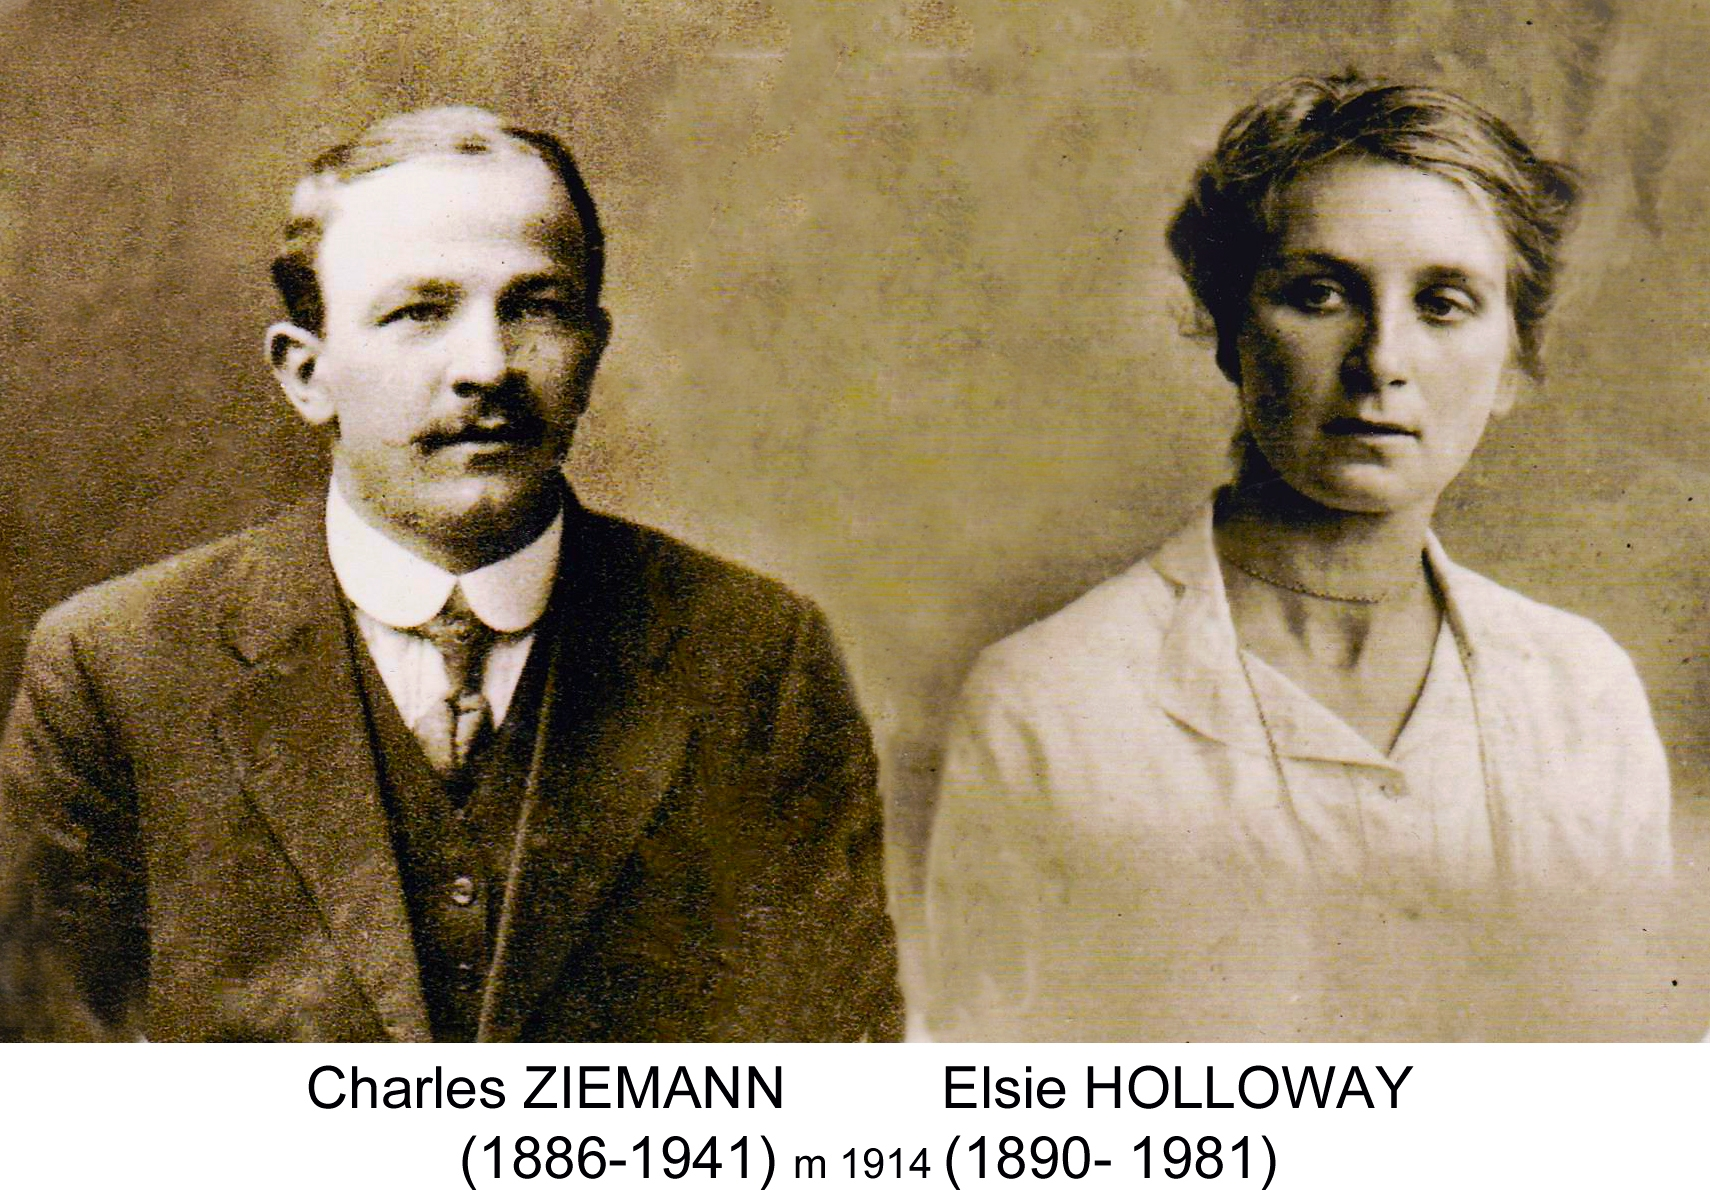 Charles ZIEMANN and his wife